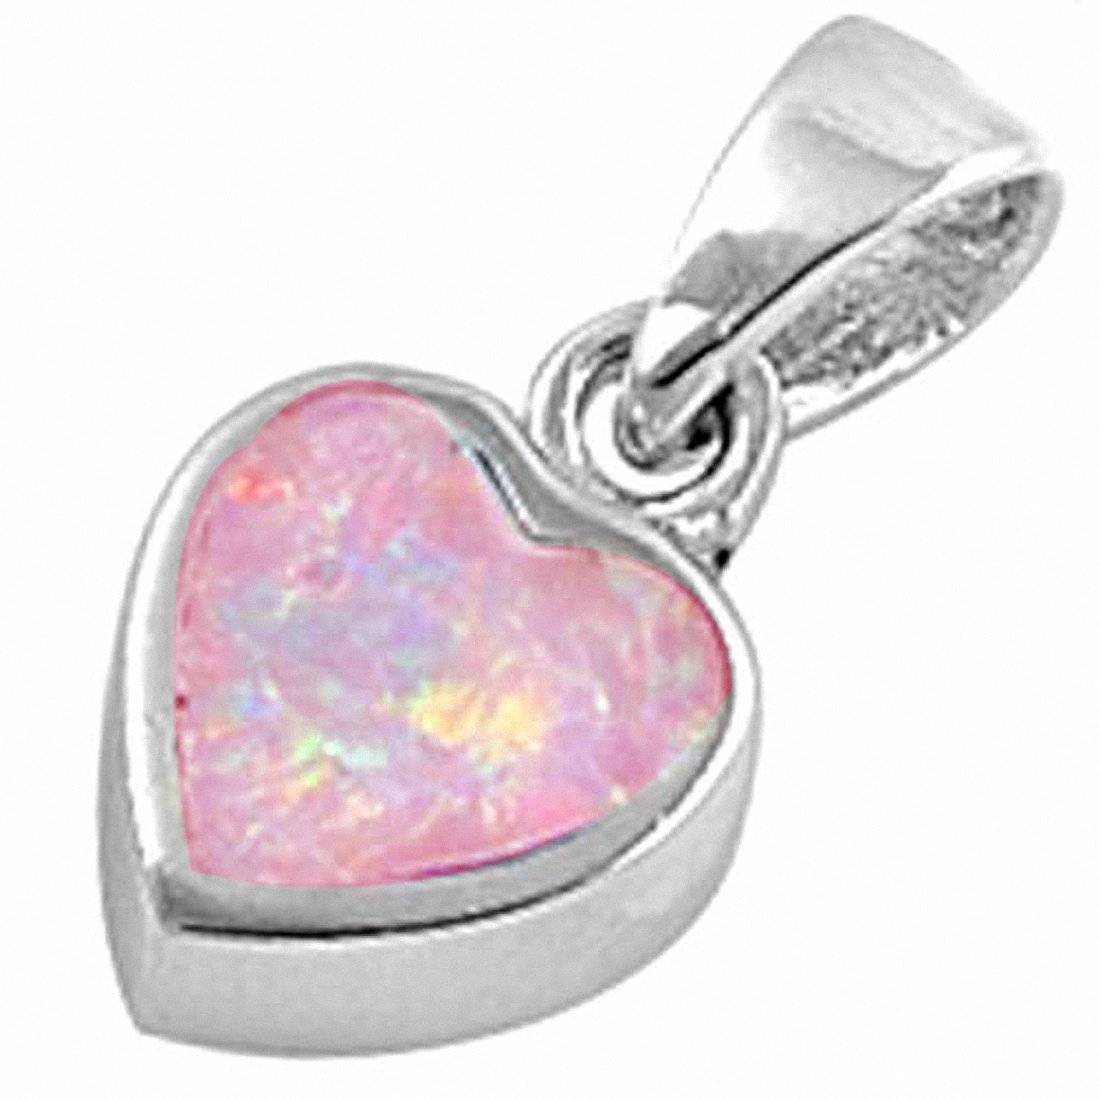 Solitaire Heart Pendant Charm Created Opal 925 Sterling Silver Choose Color